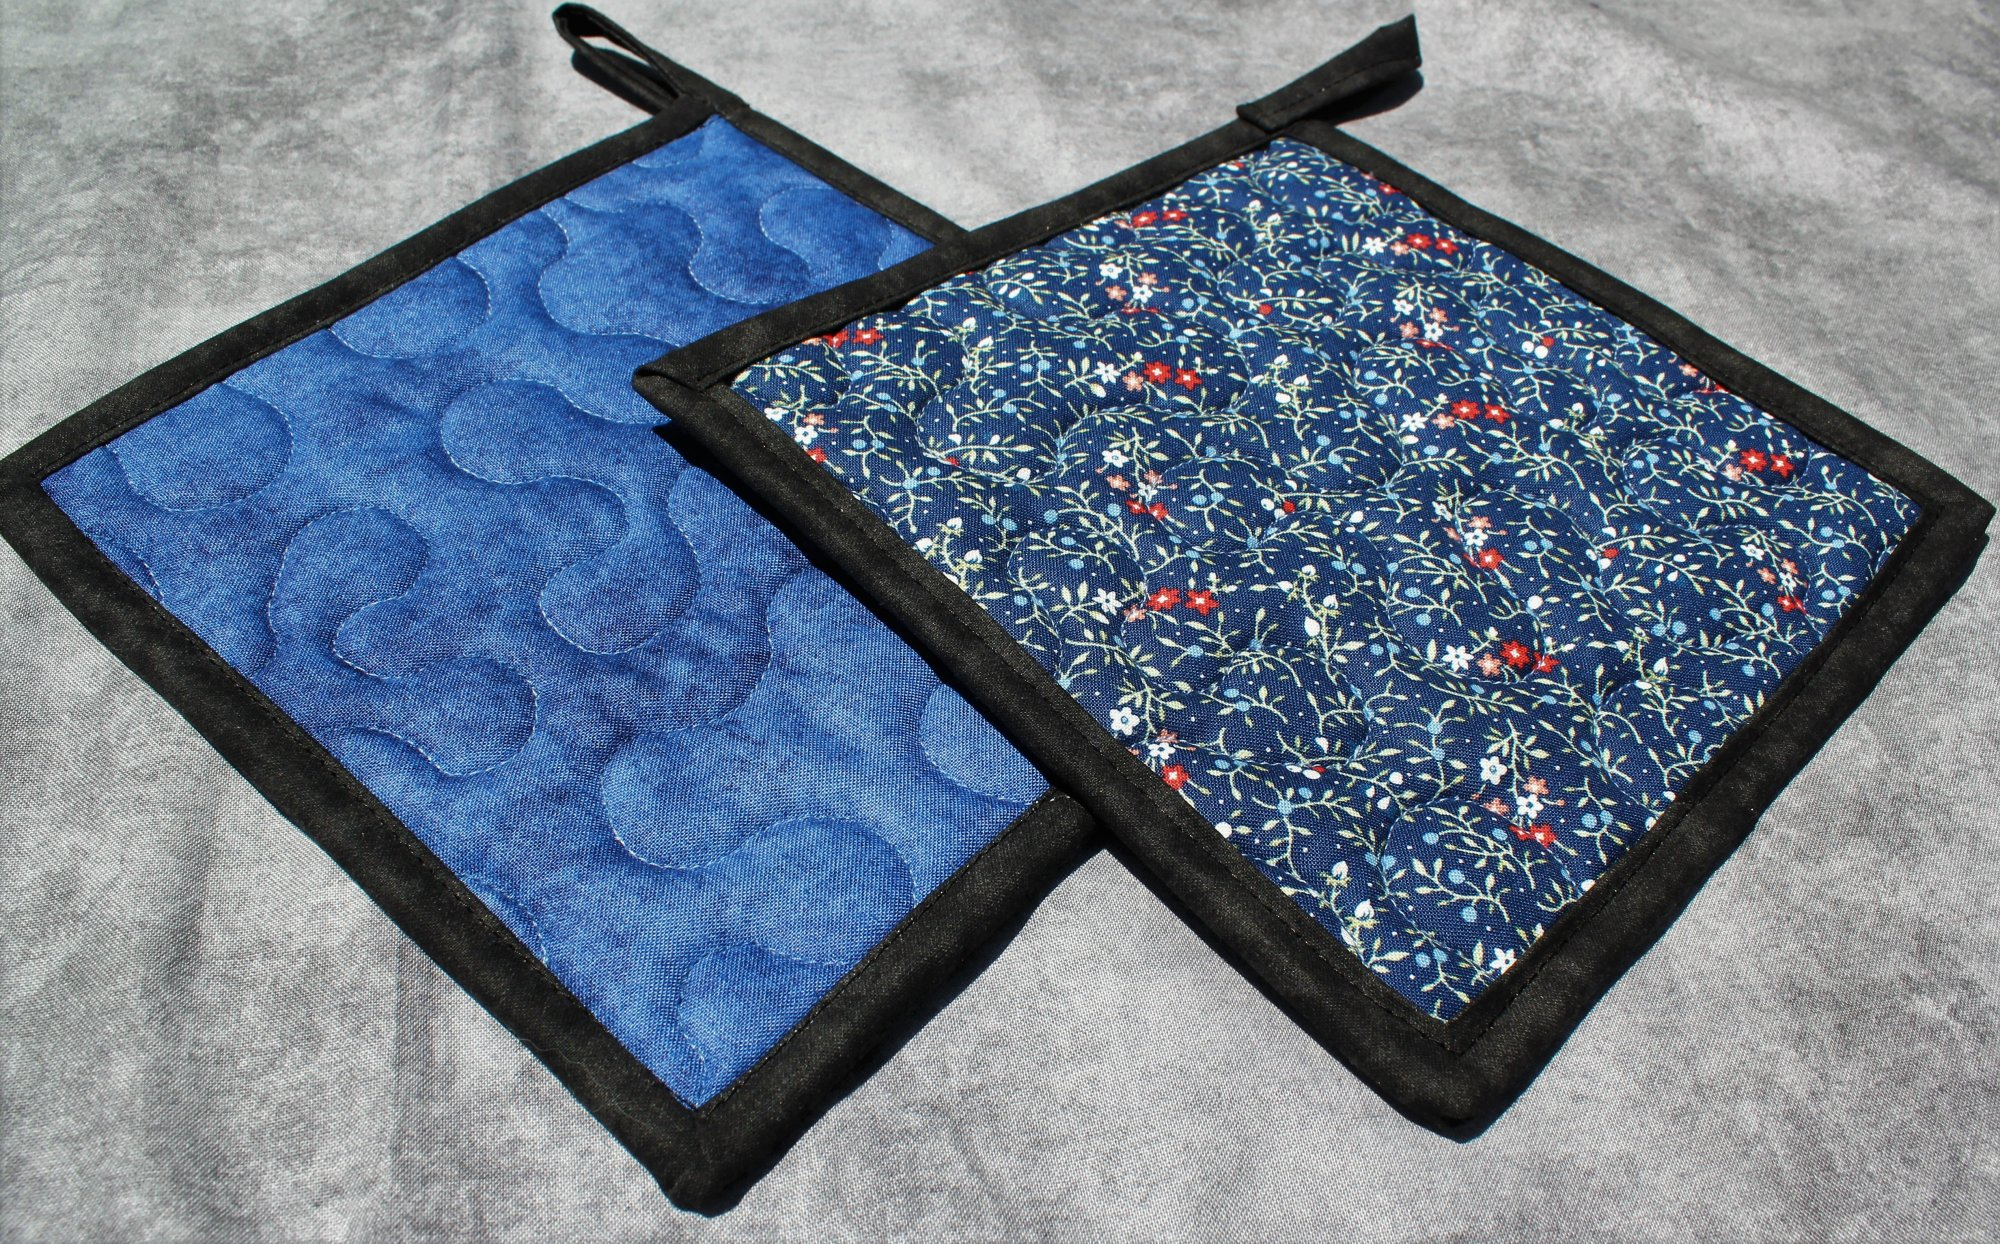 Blue/Red/Peach/White Flowers and Leaves Potholders Set of 2